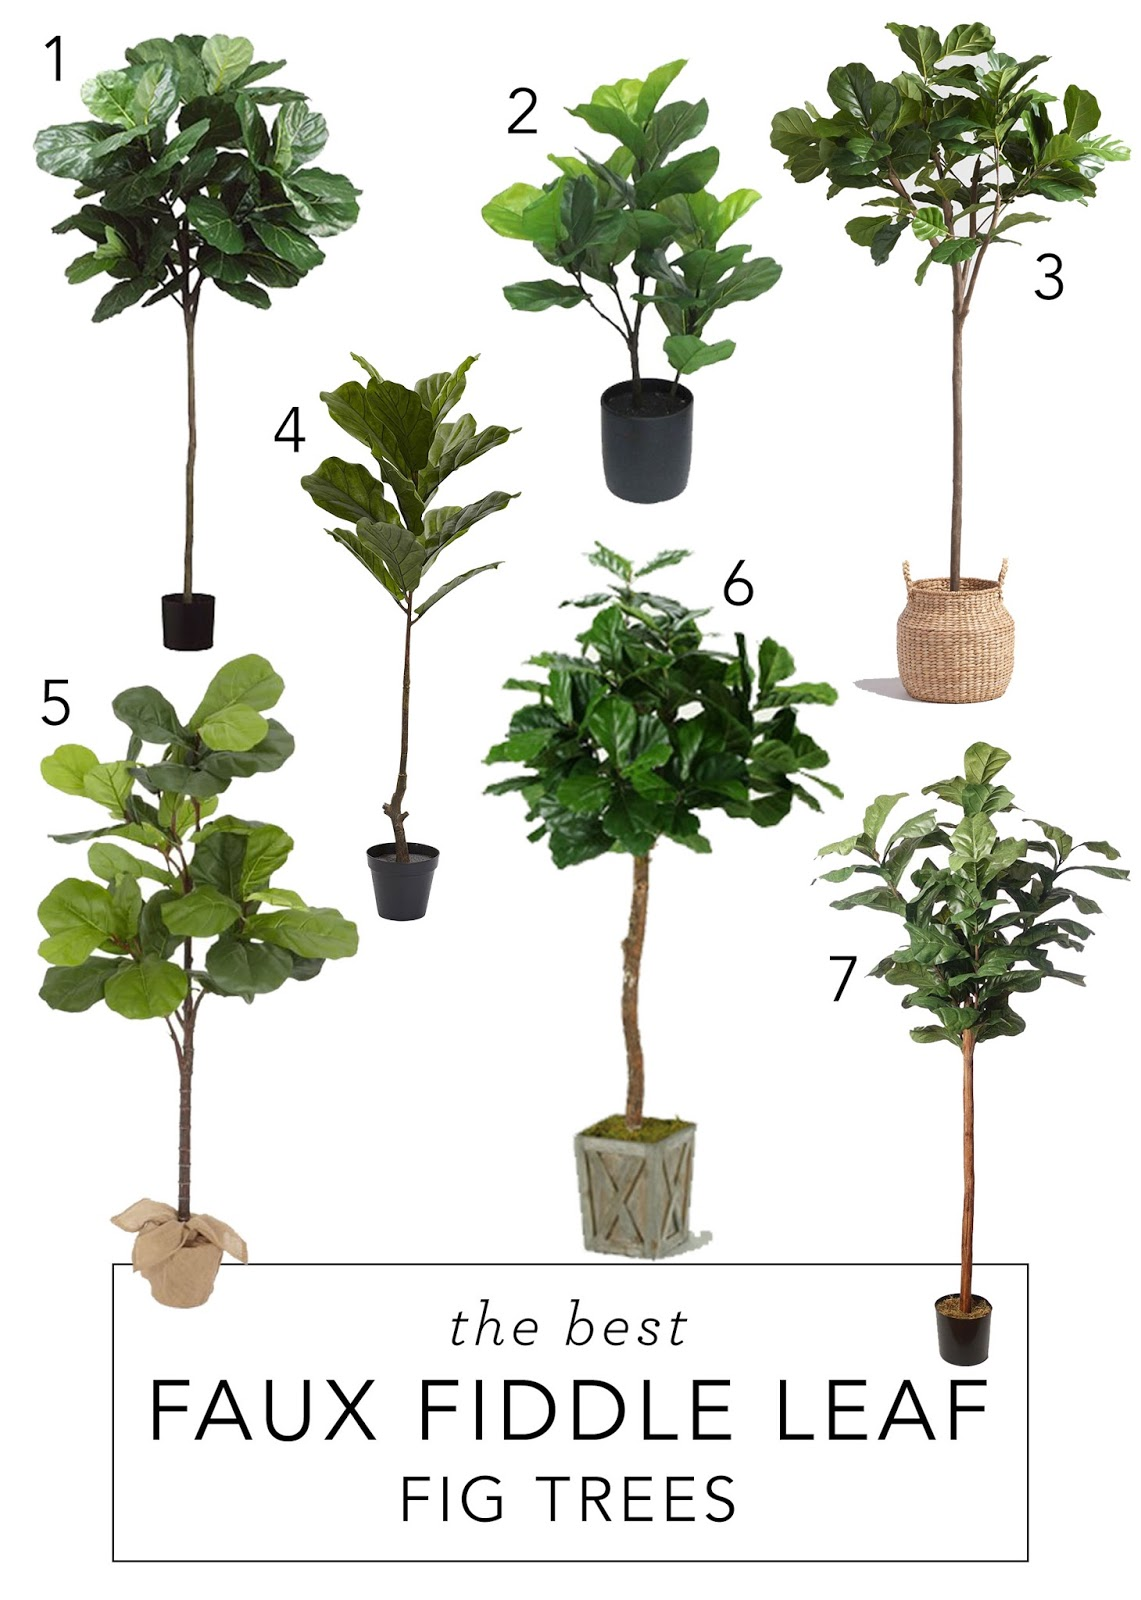 the best faux fiddle leaf fig trees